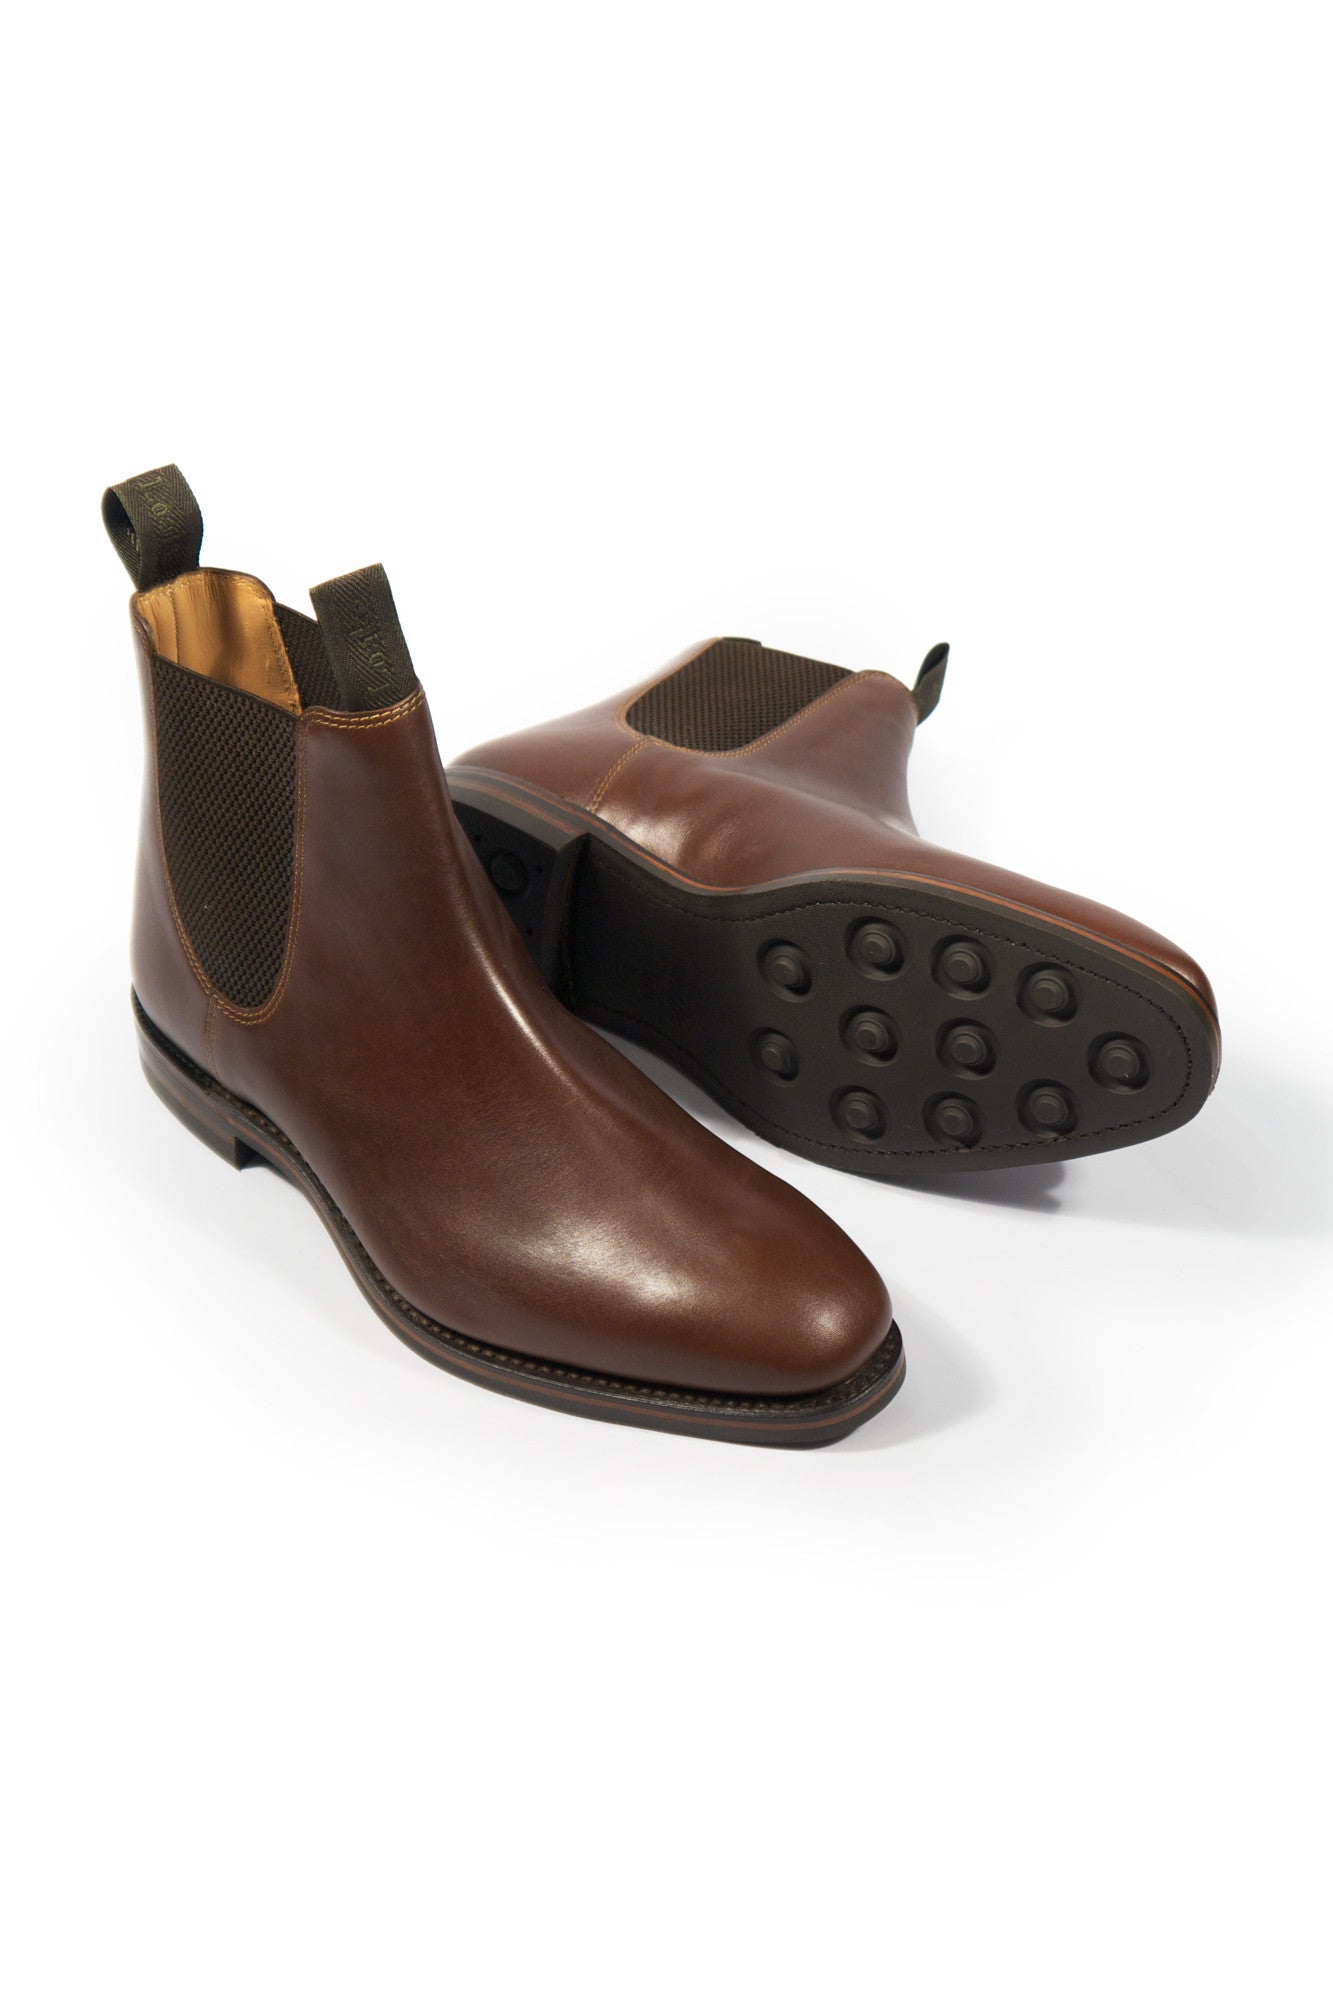 Loake 1880 Chatsworth Dainite Chelsea Boot - Shoes - Loake - LALONDE's